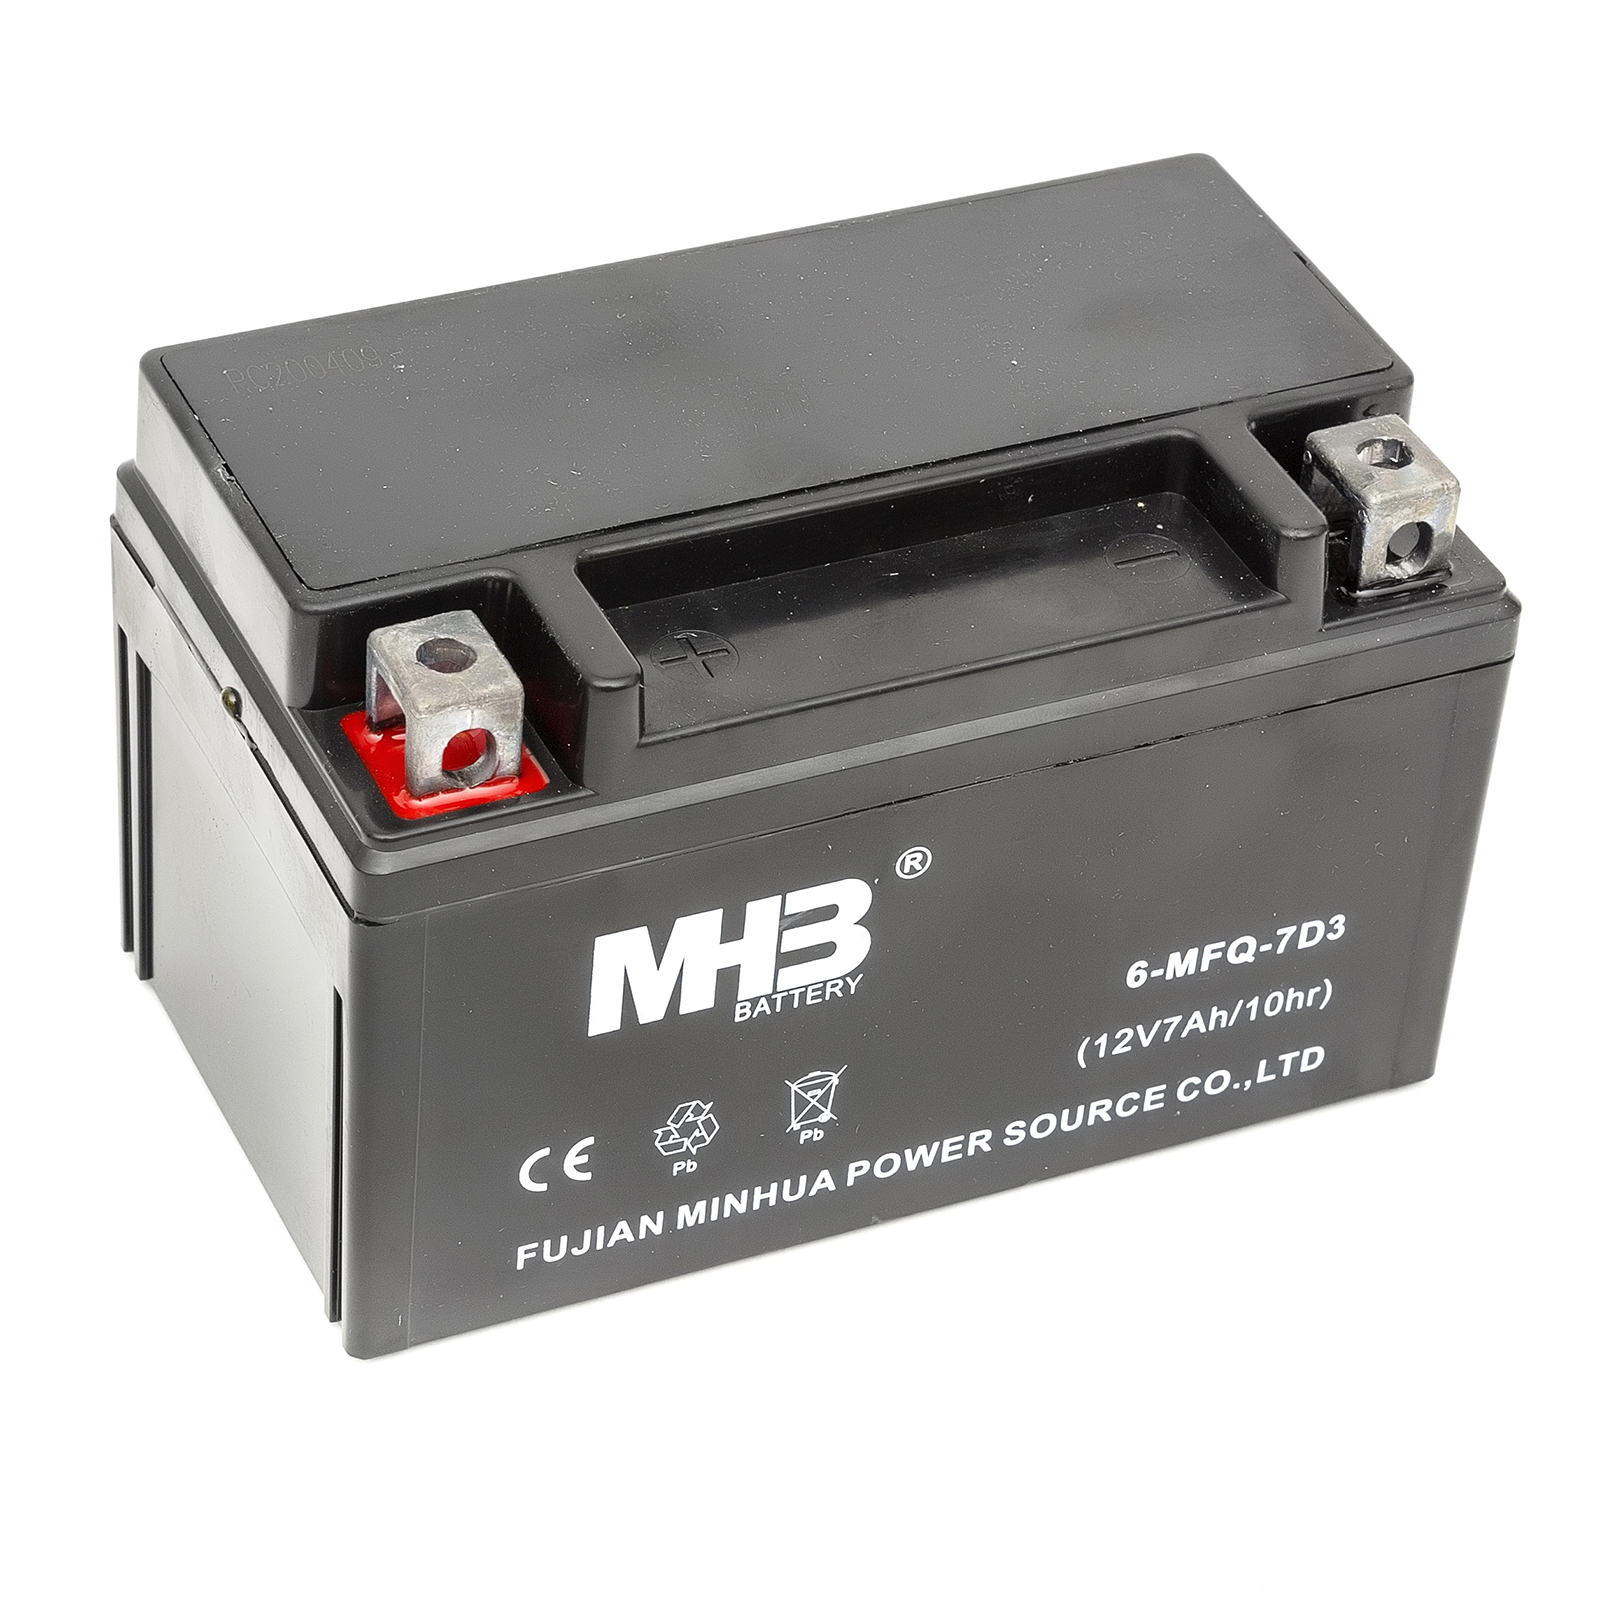 MHB Lead Acid Sealed Battery 12v 7Ah Replace Nitro YTX7L-BS Motorcycle Motorbike